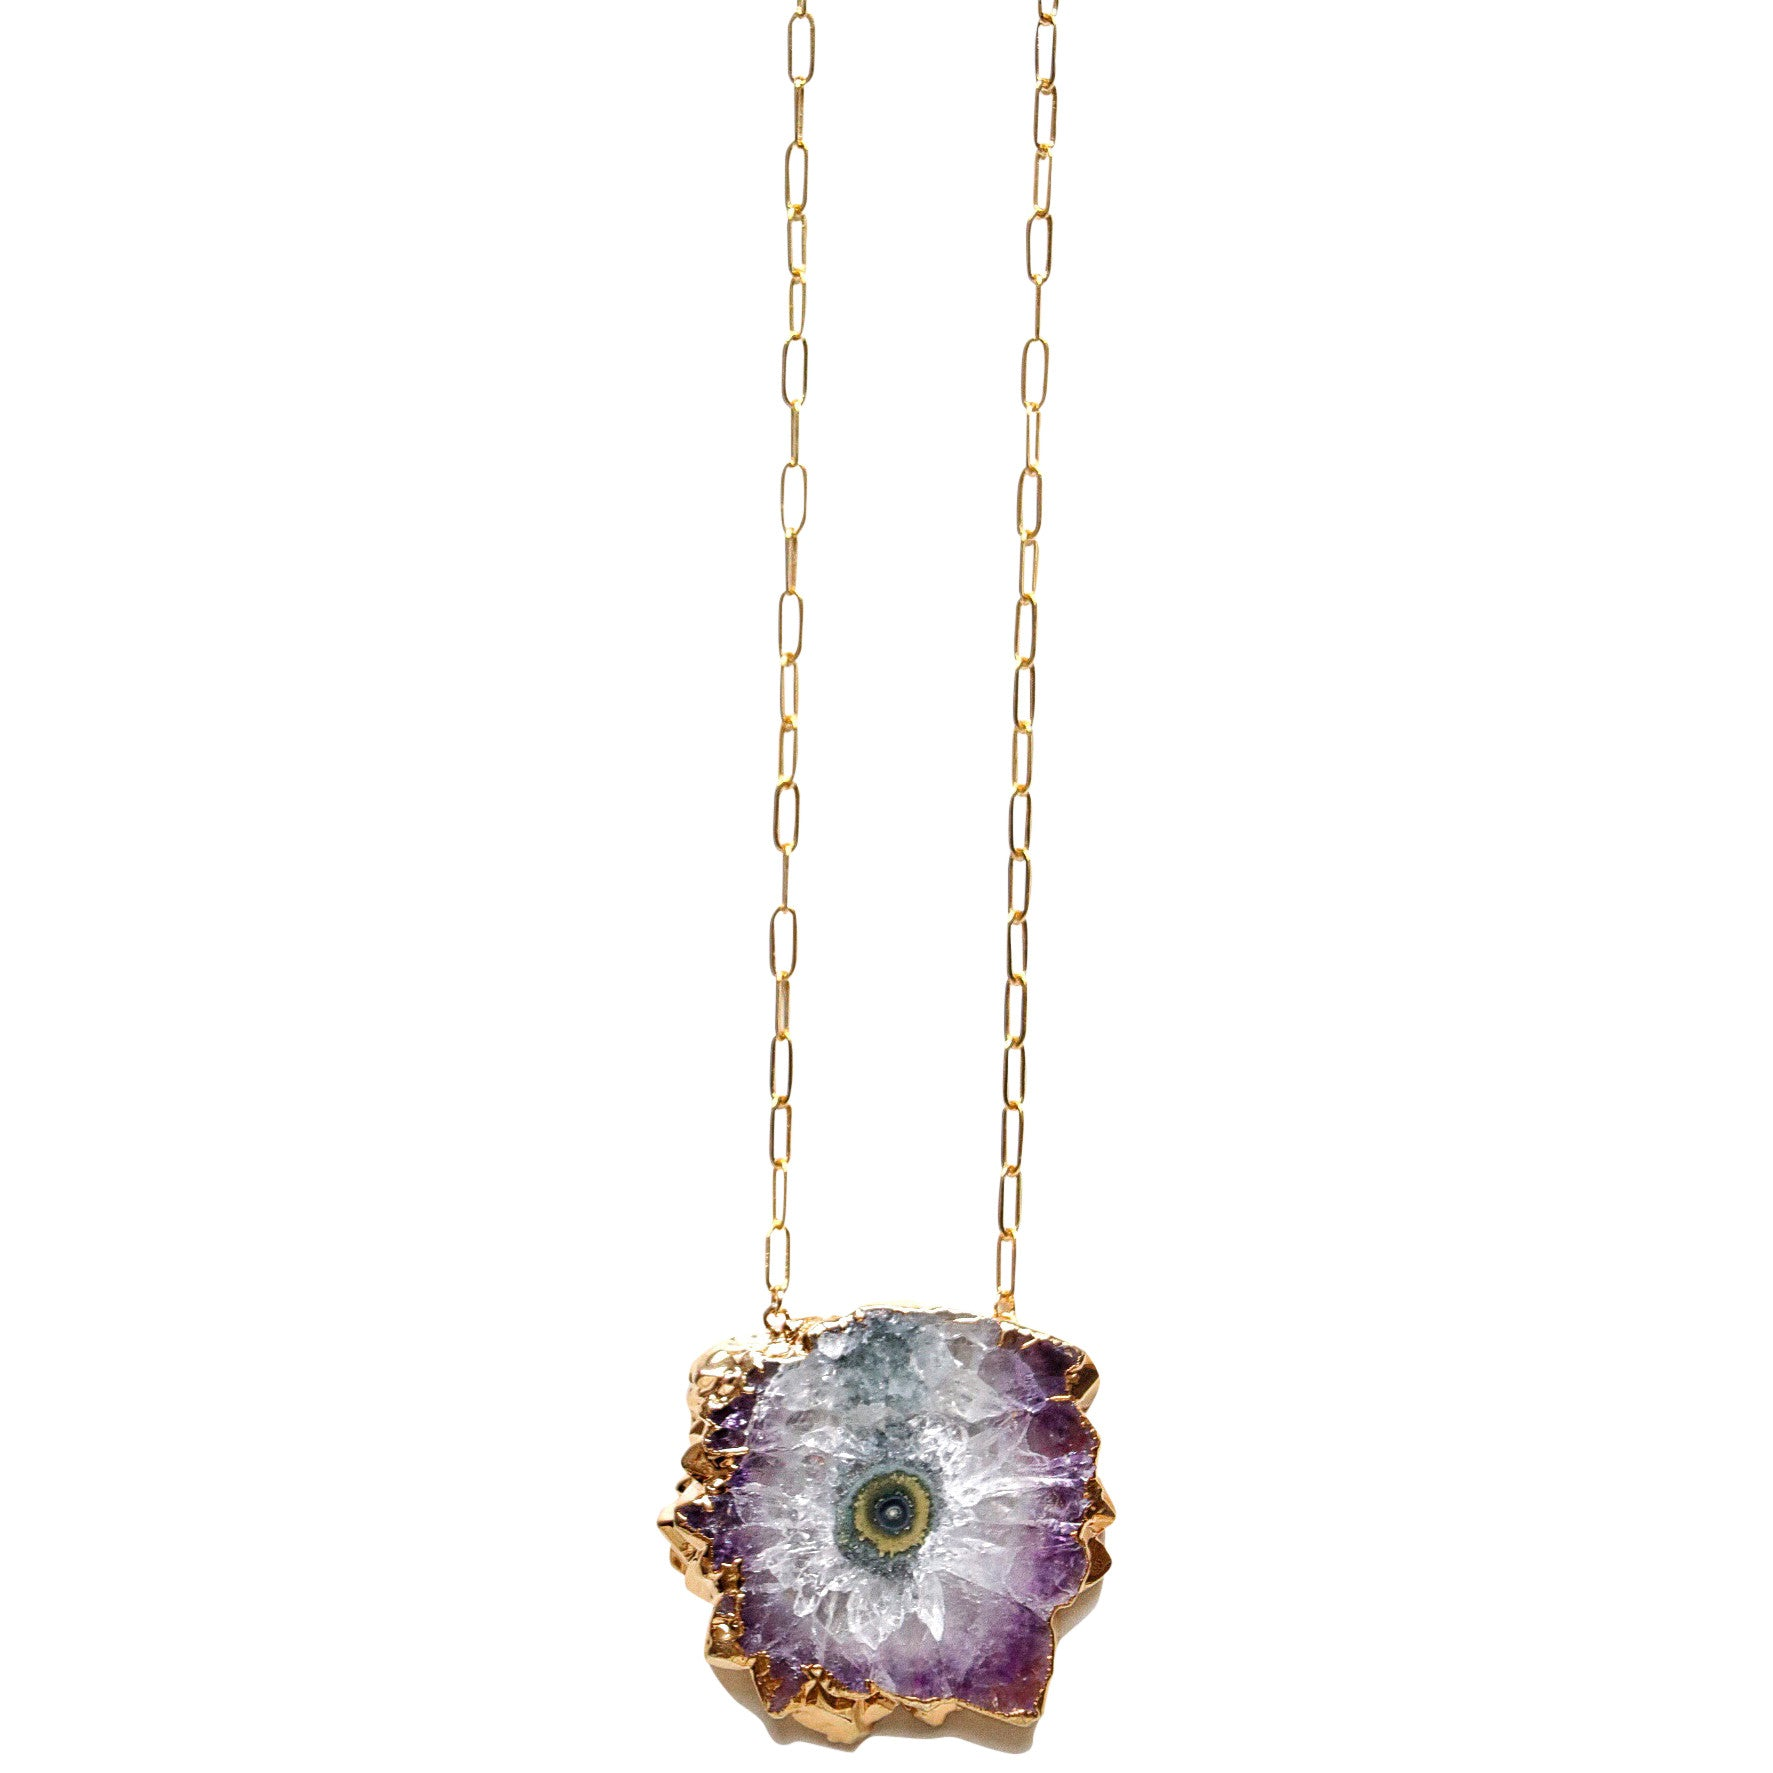 Molly Jane Designs Amethyst Slice Necklace